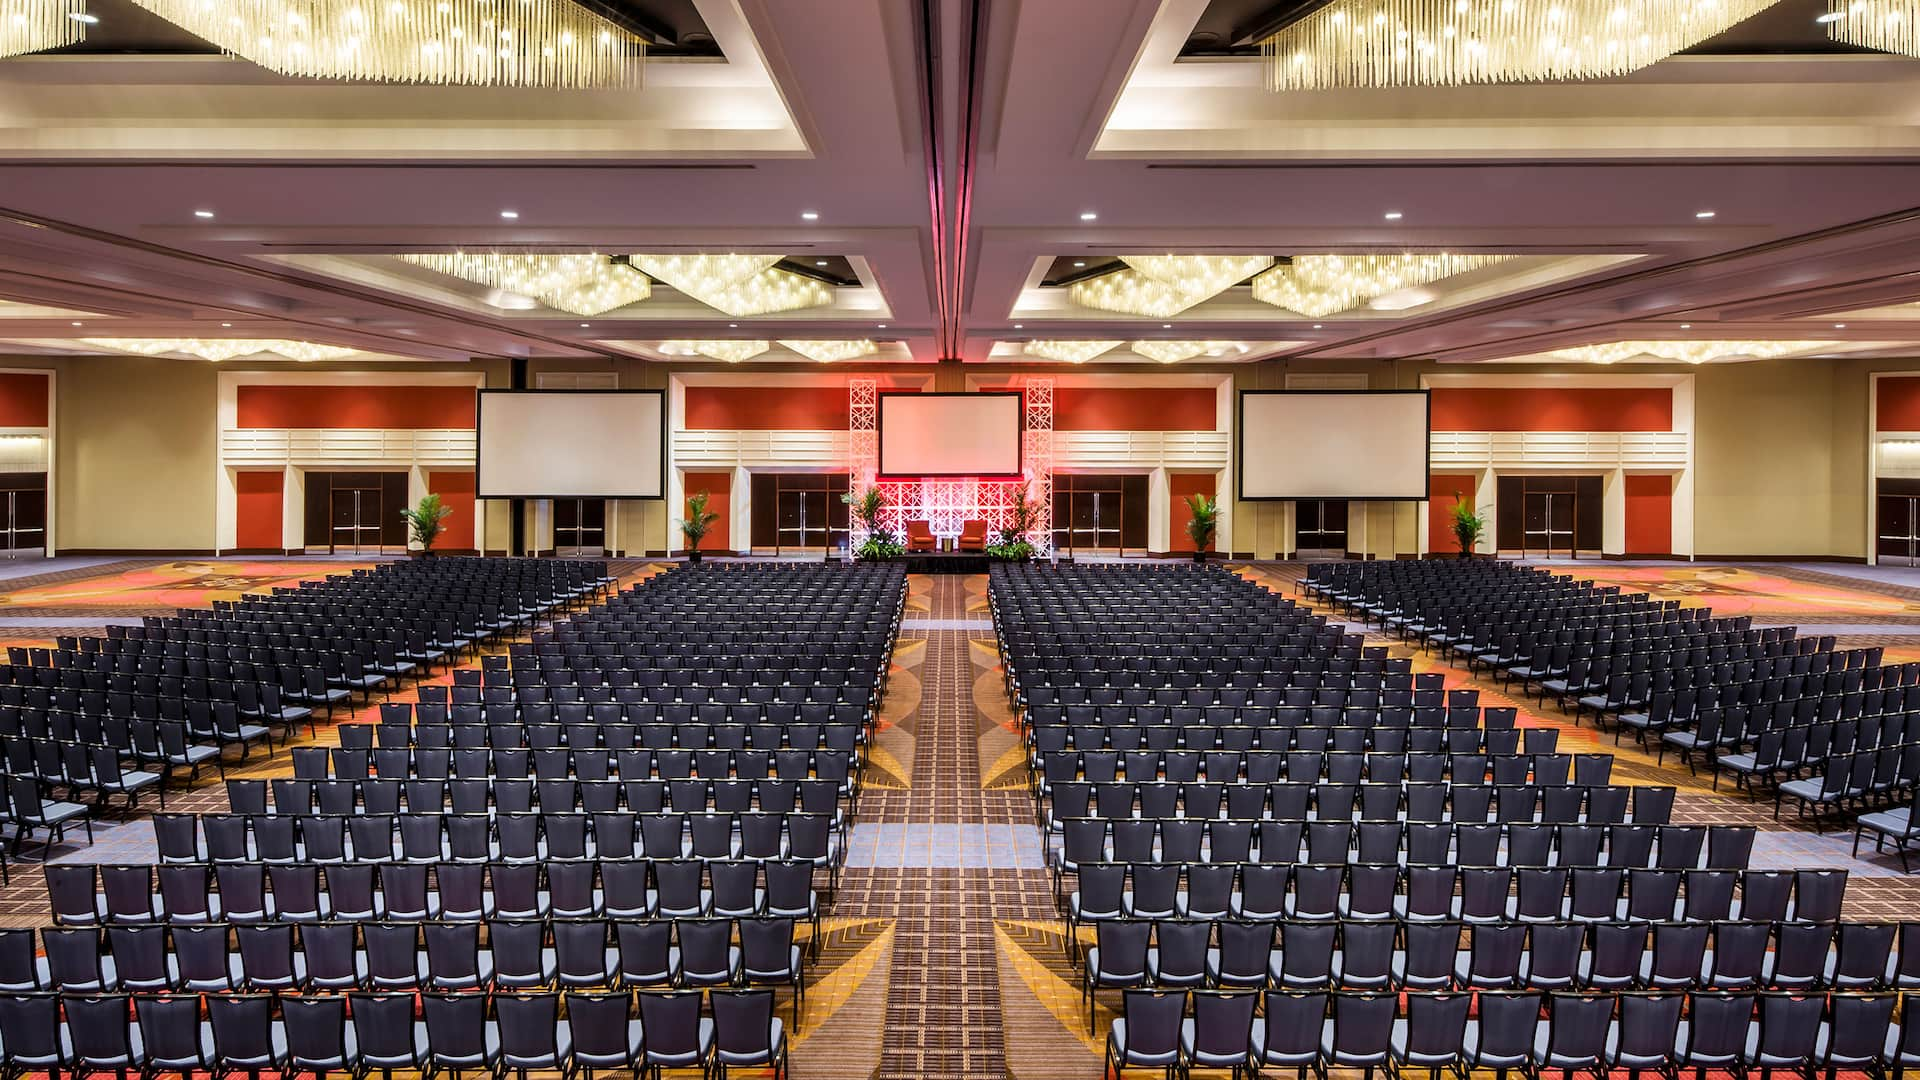 Grand ballroom theater at Hyatt Regency O'Hare in Rosemont, IL